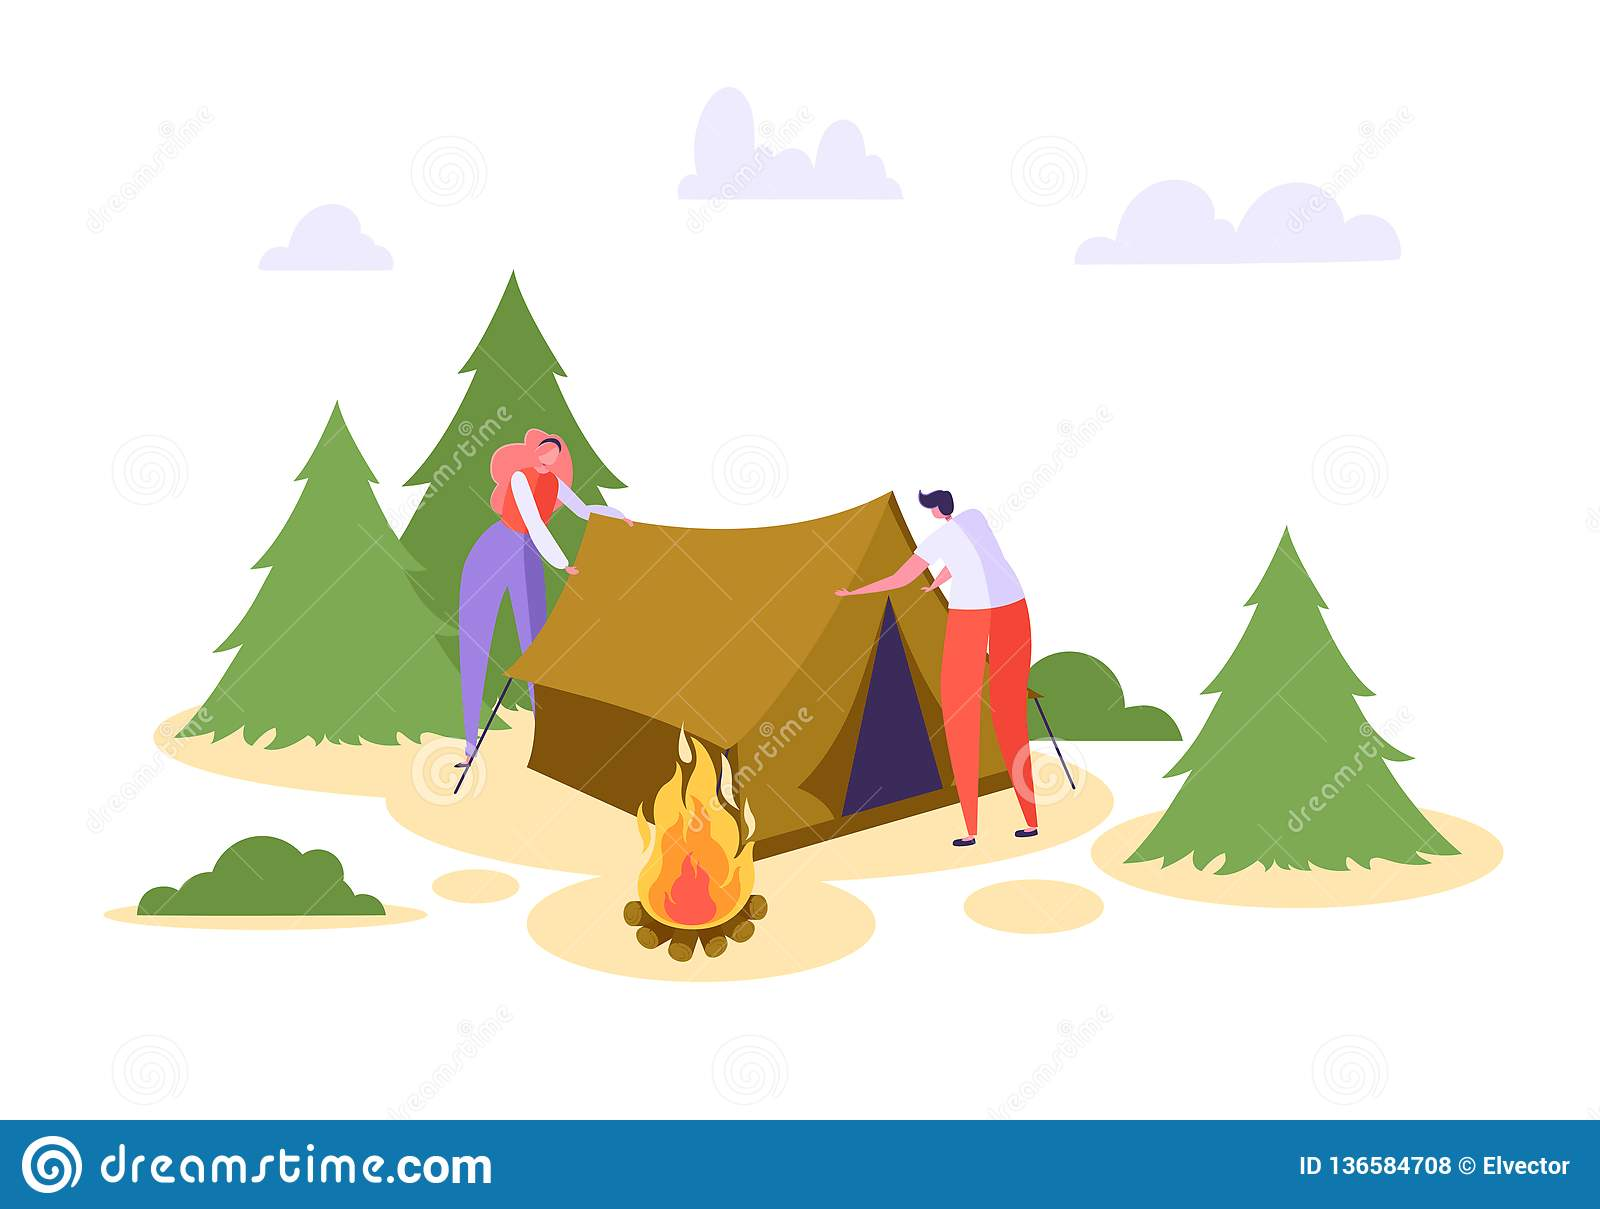 Man Woman Put Up Tent Forest Vacation. People Character Camp in Wildlife Nature Forest. Family Summer Picnic Campfire